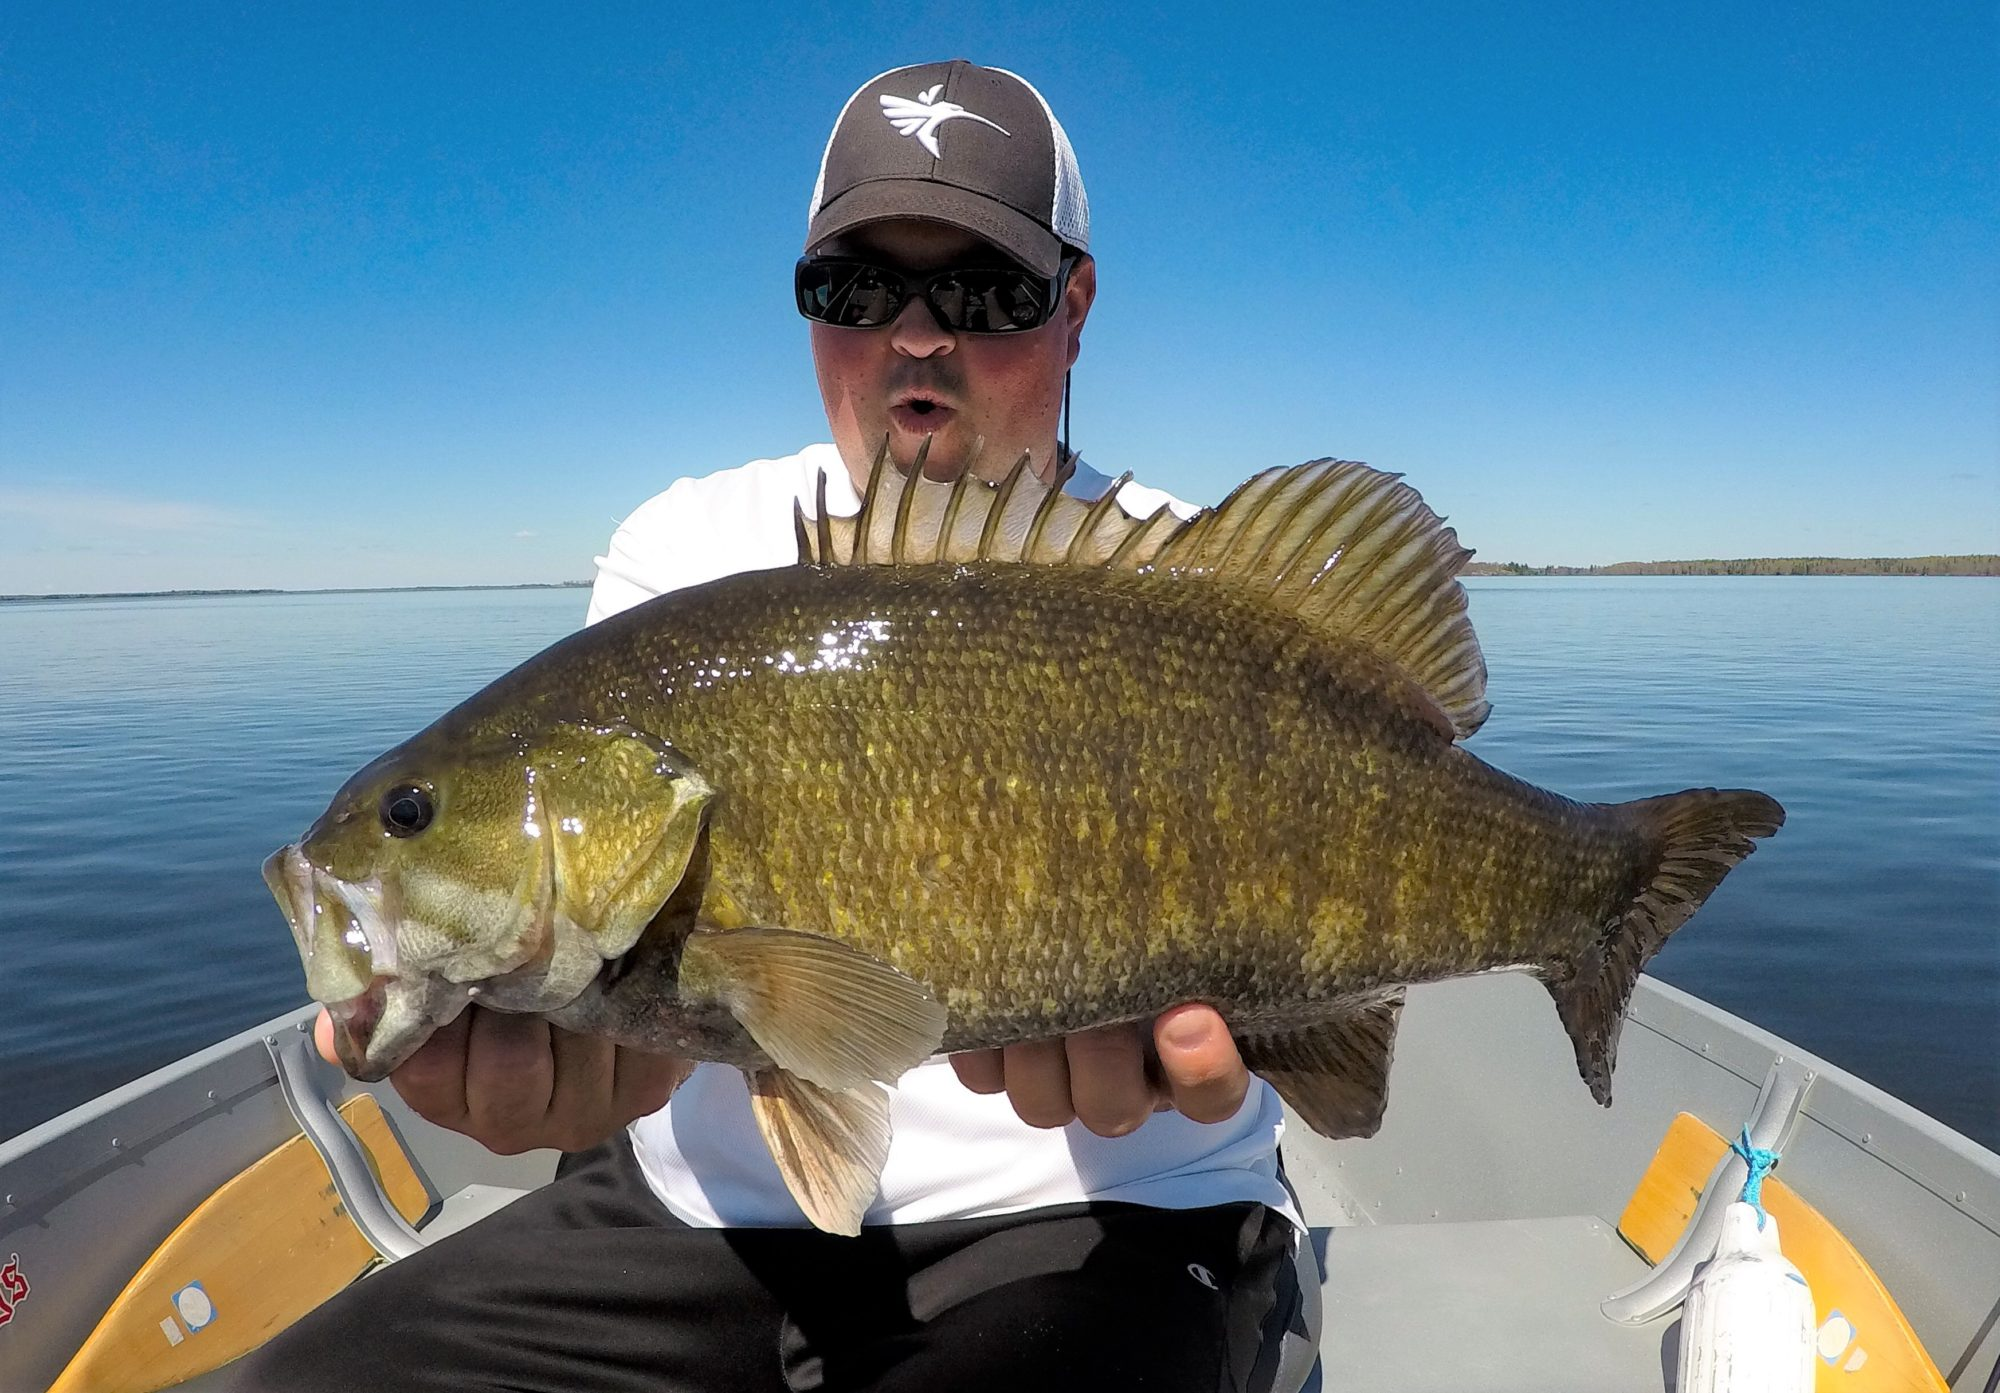 Top 6 Early Season Lures and Baits Sure to Catch Fish in